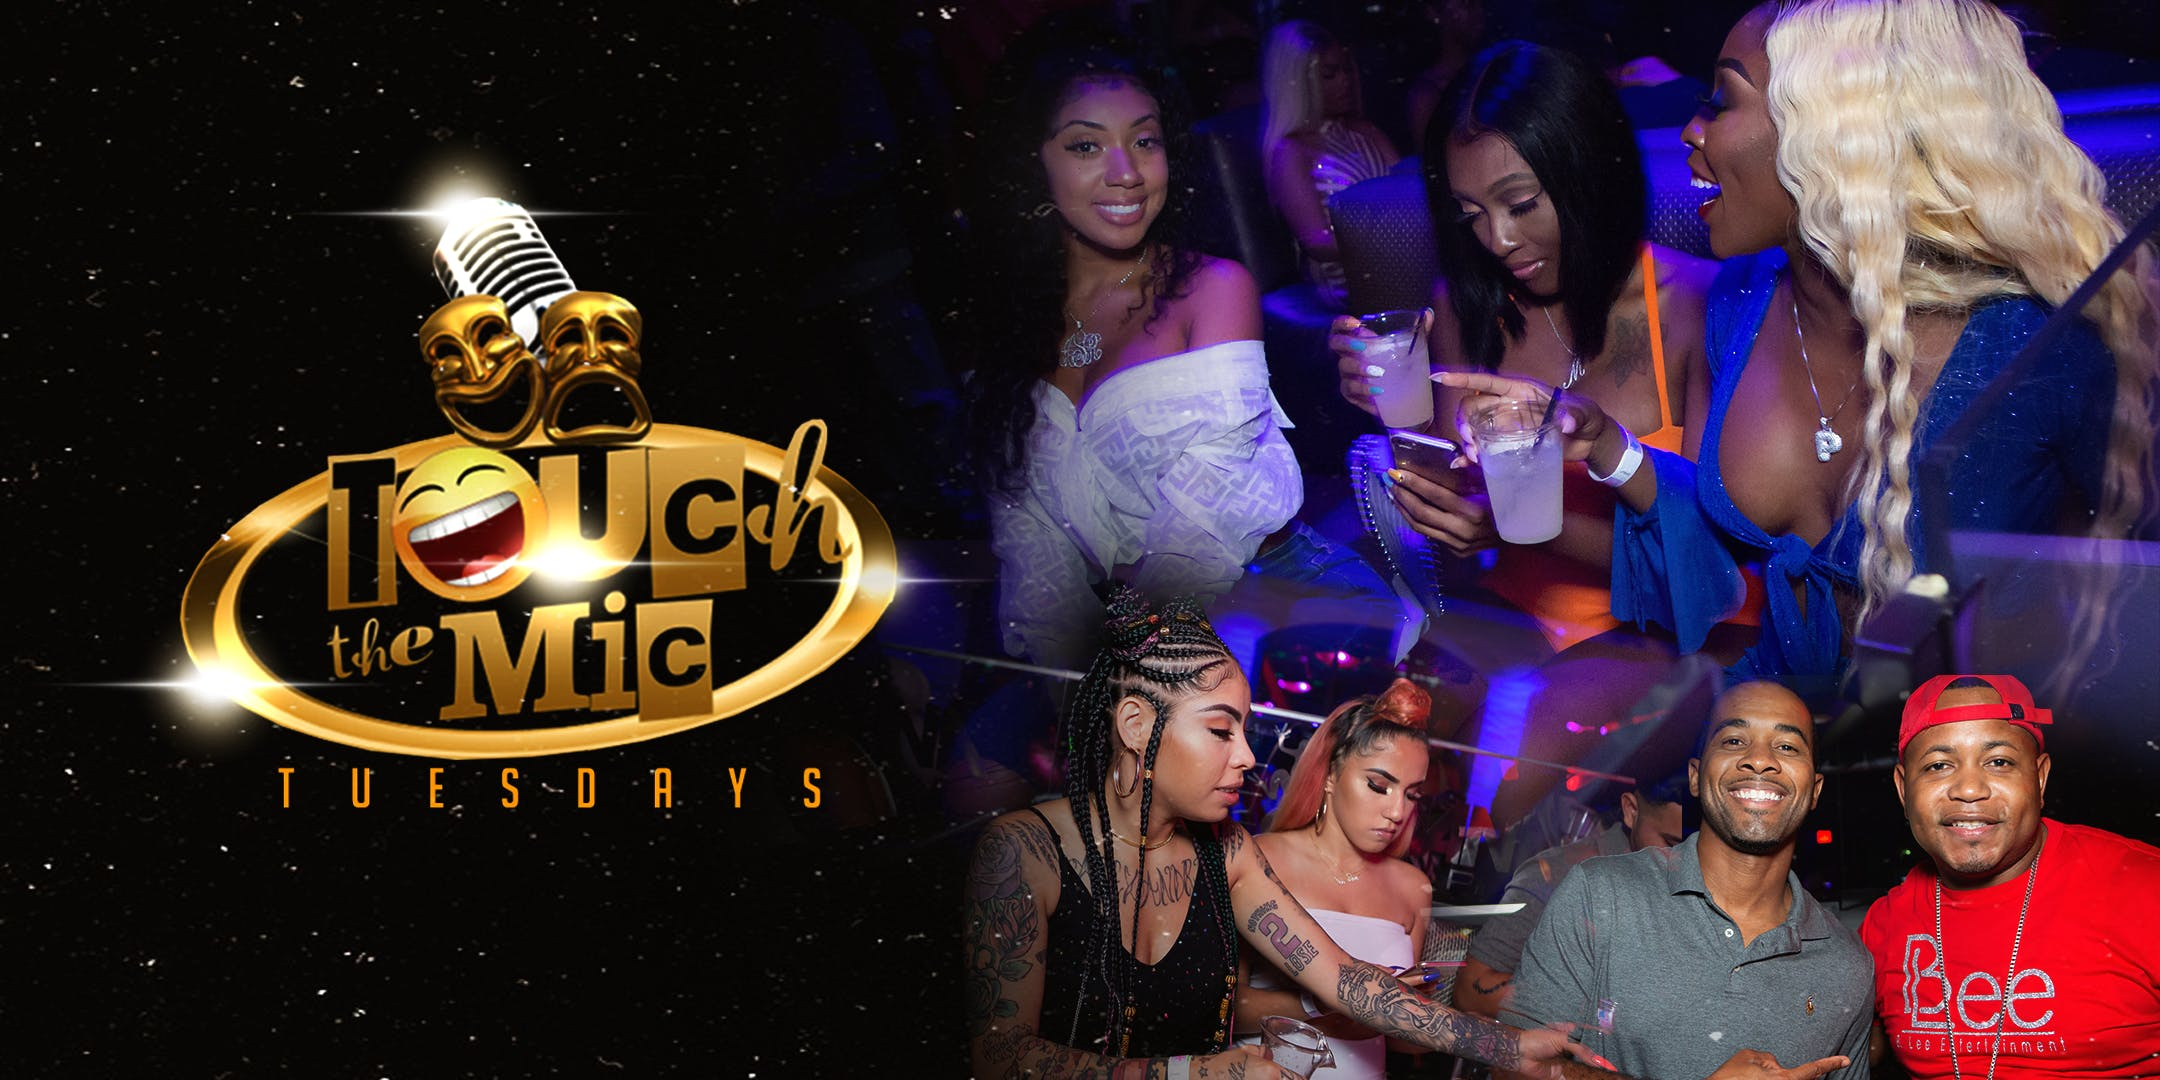 Touch The Mic Tuesdays Karaoke Party  + Happy Hour After Dark